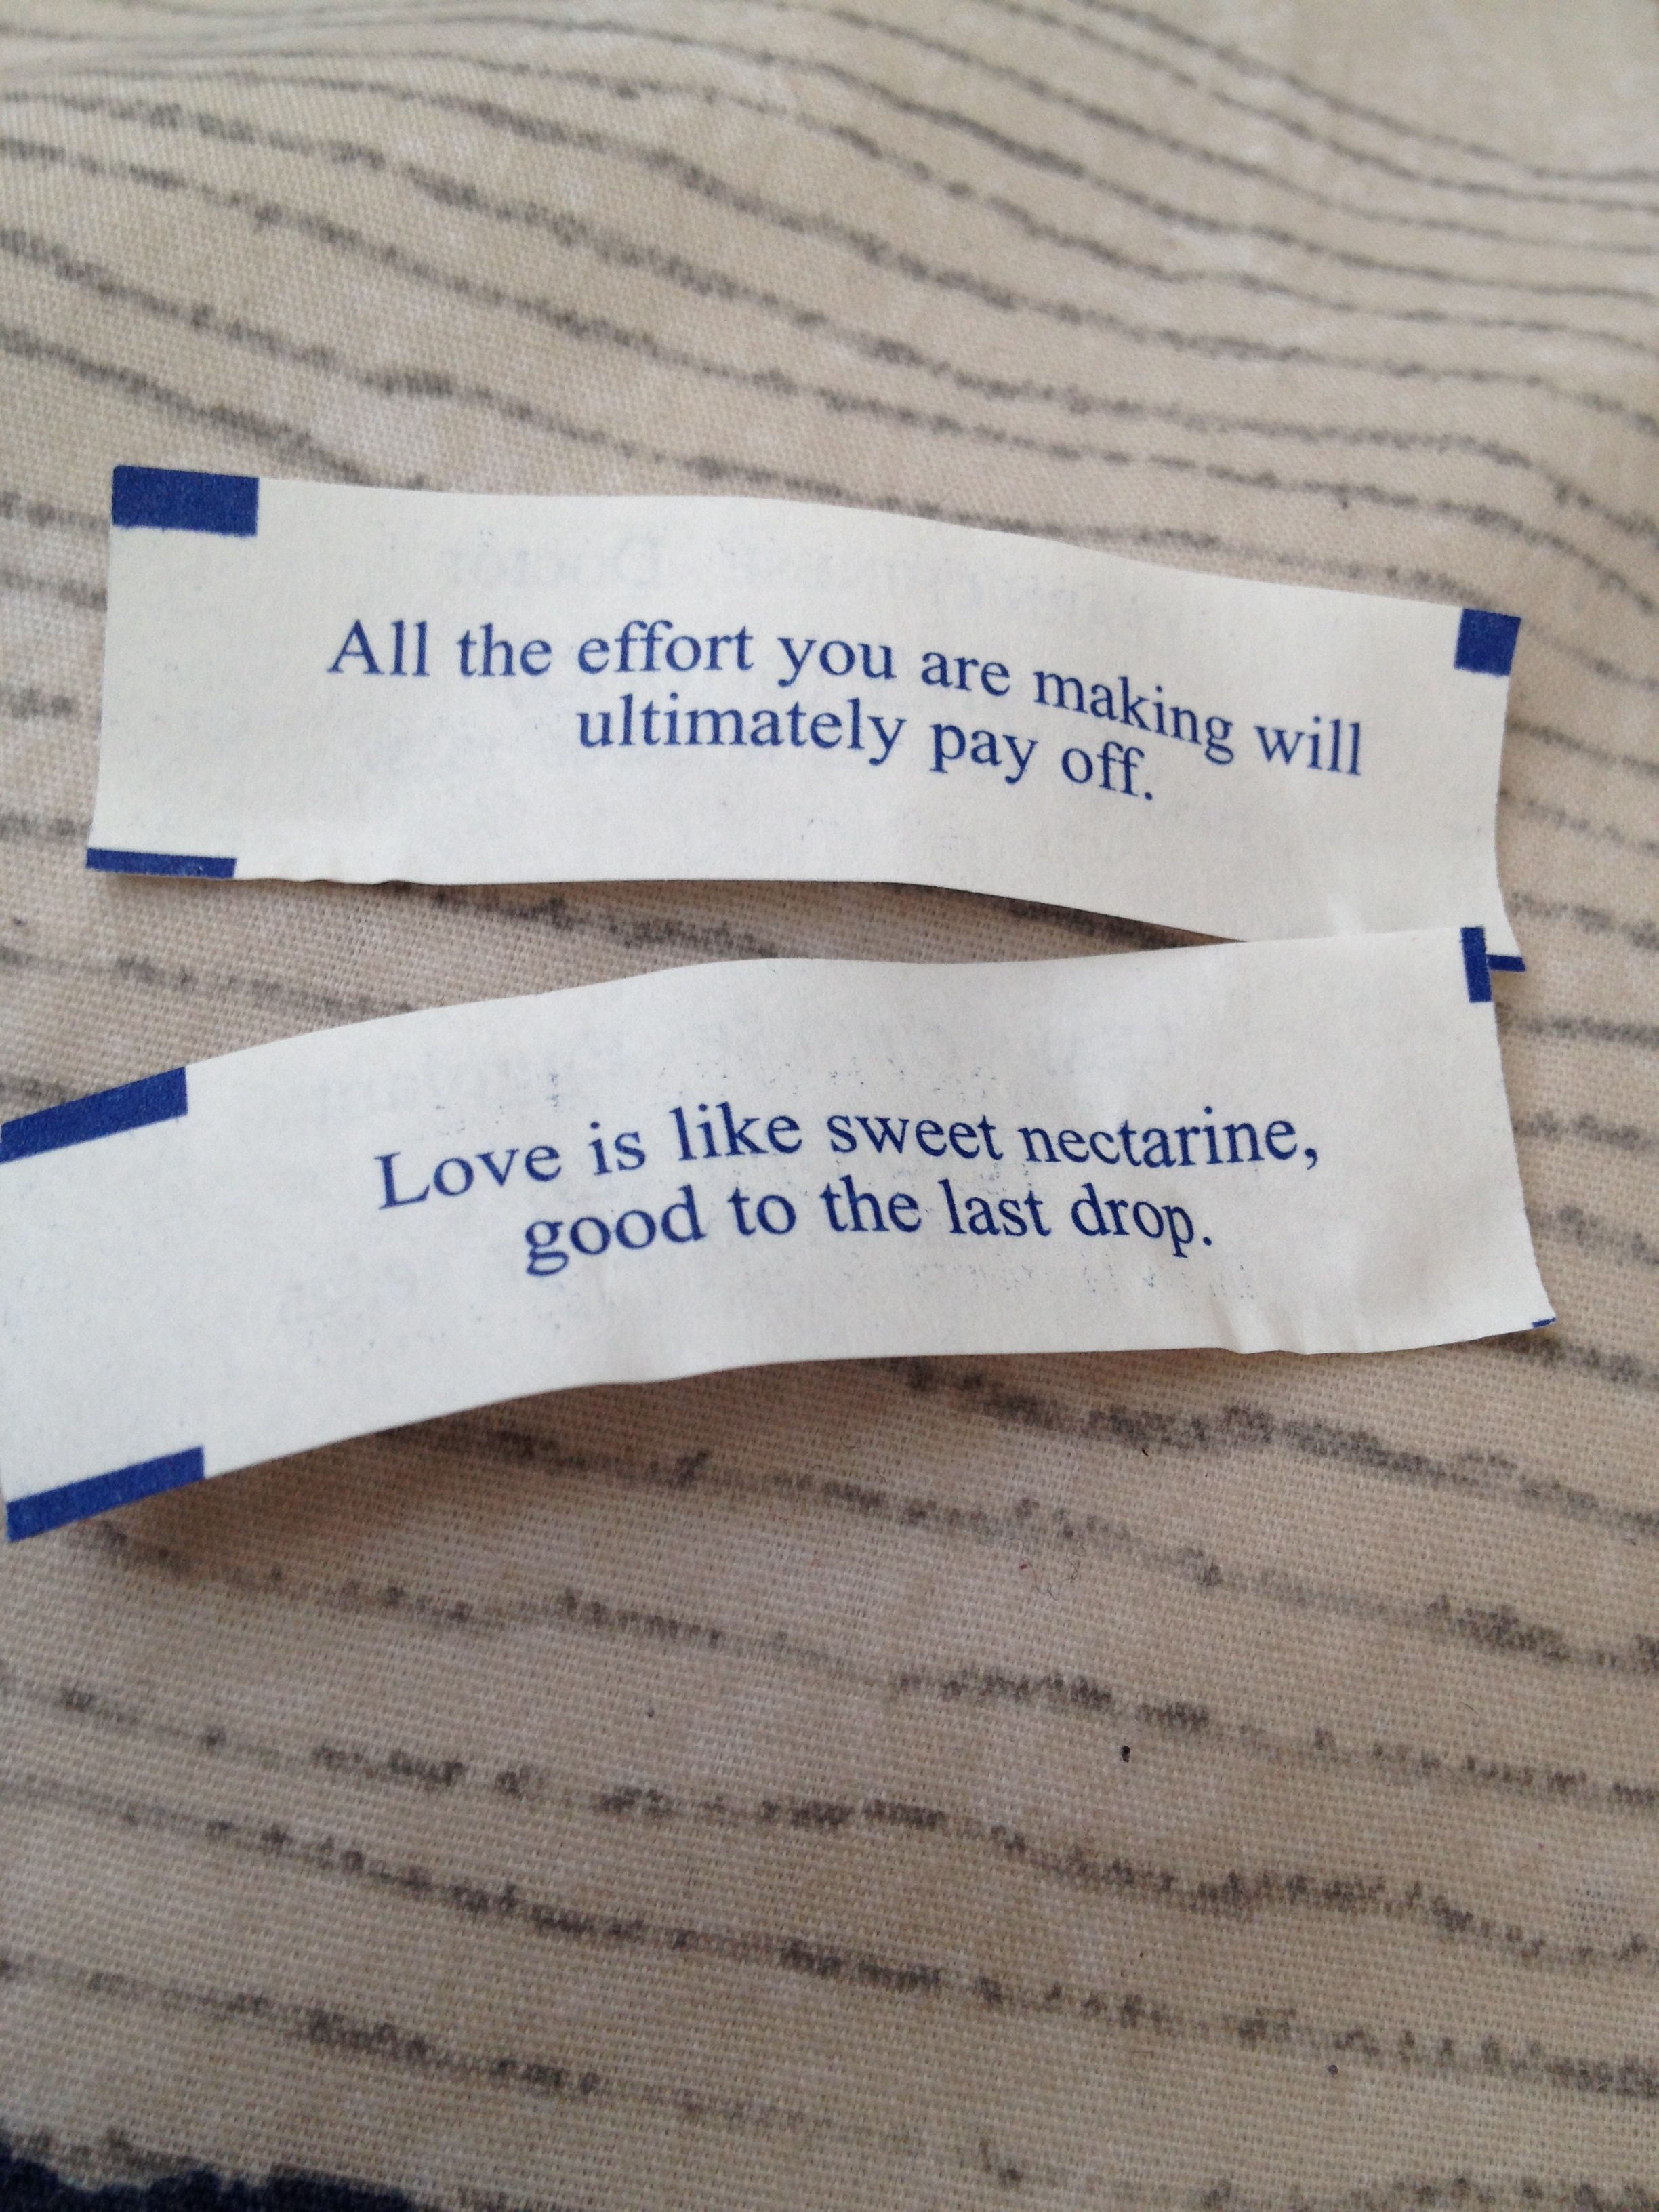 Pin By Kimberly Panzini On True Fortune Cookie Quotes Fortune Quotes Fortune Cookie